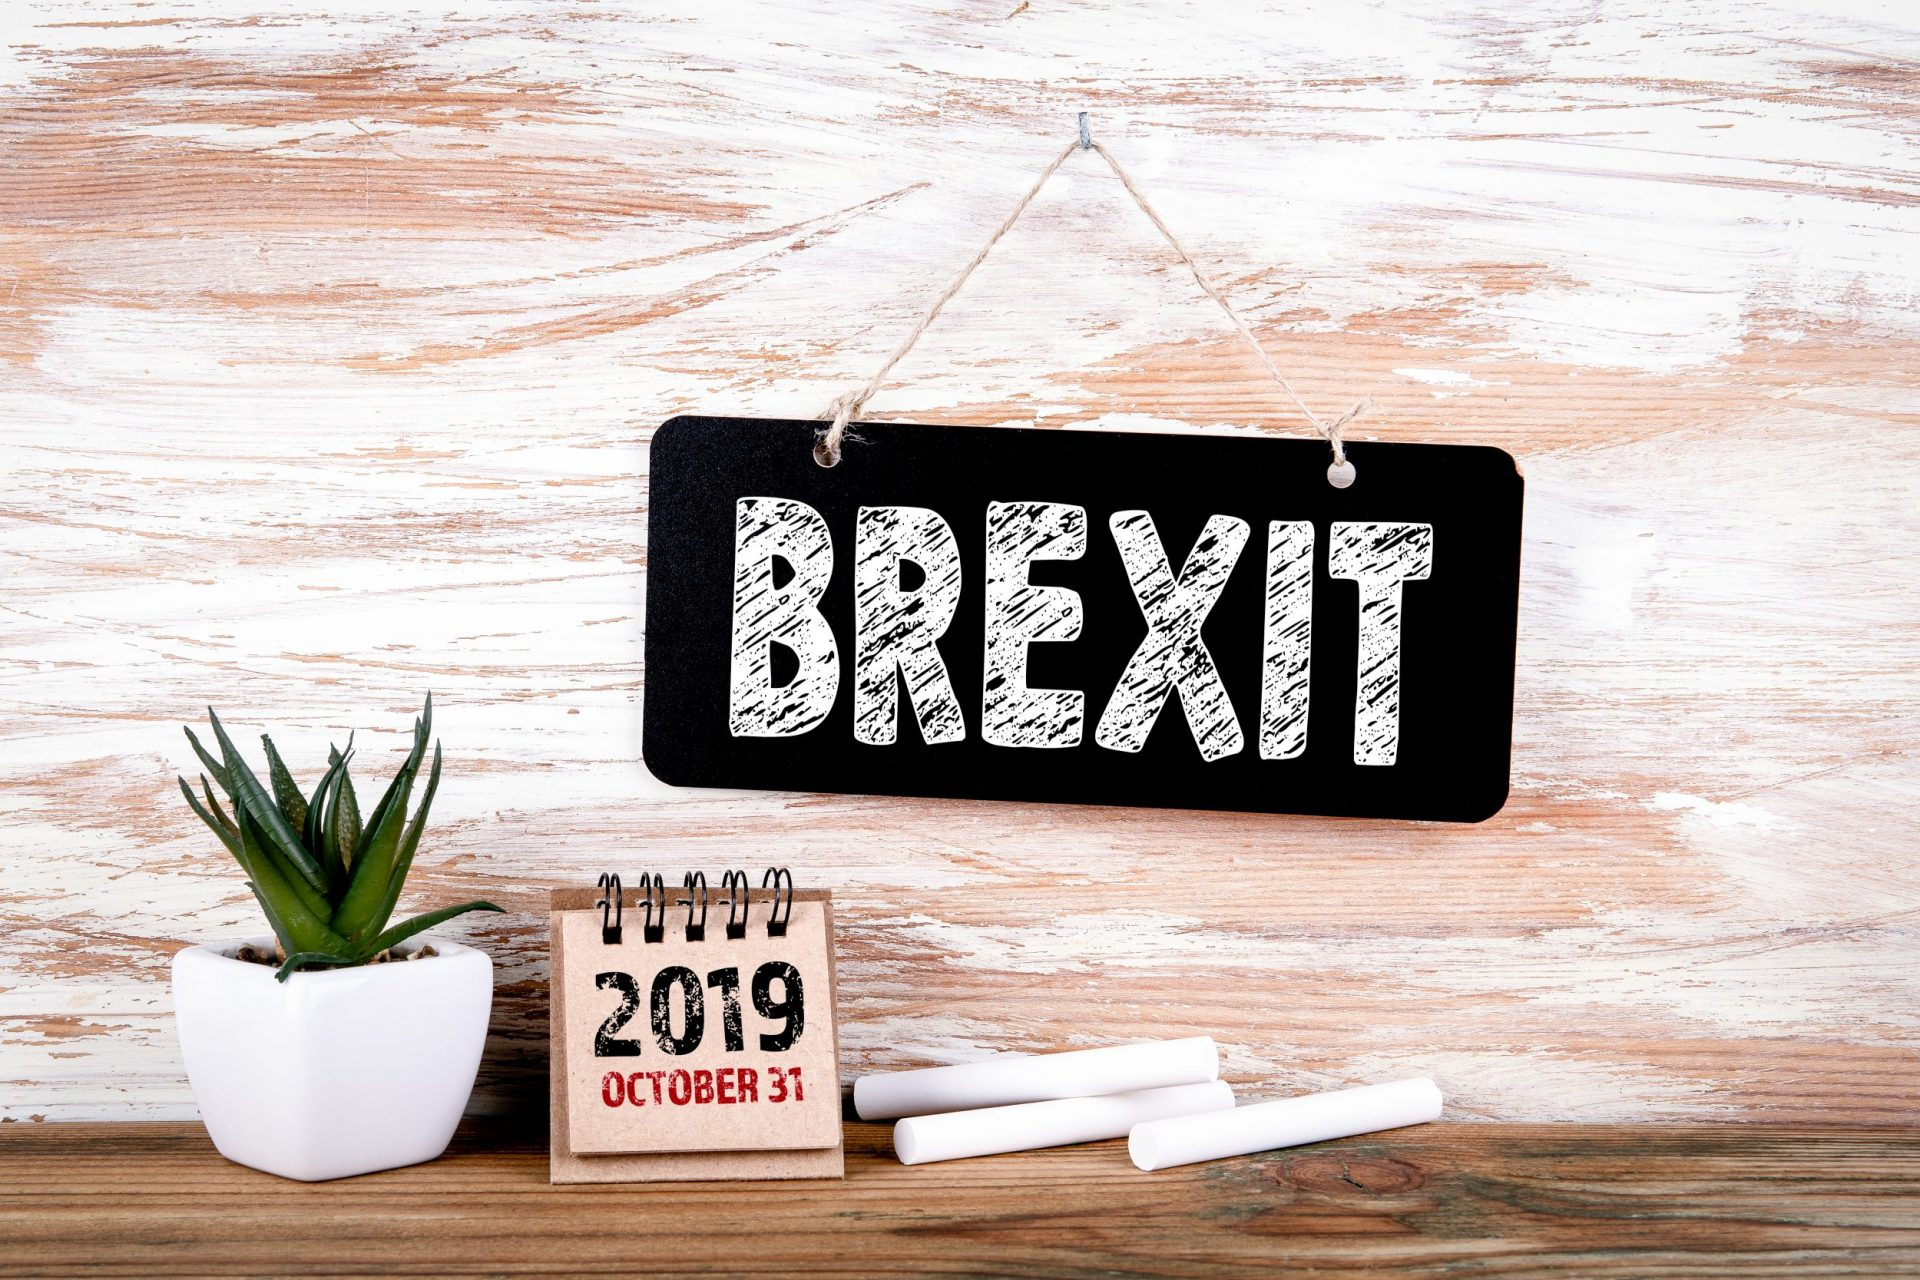 tax effects of a no deal brexit, custom duties, VAT, value added tax, direct taxes